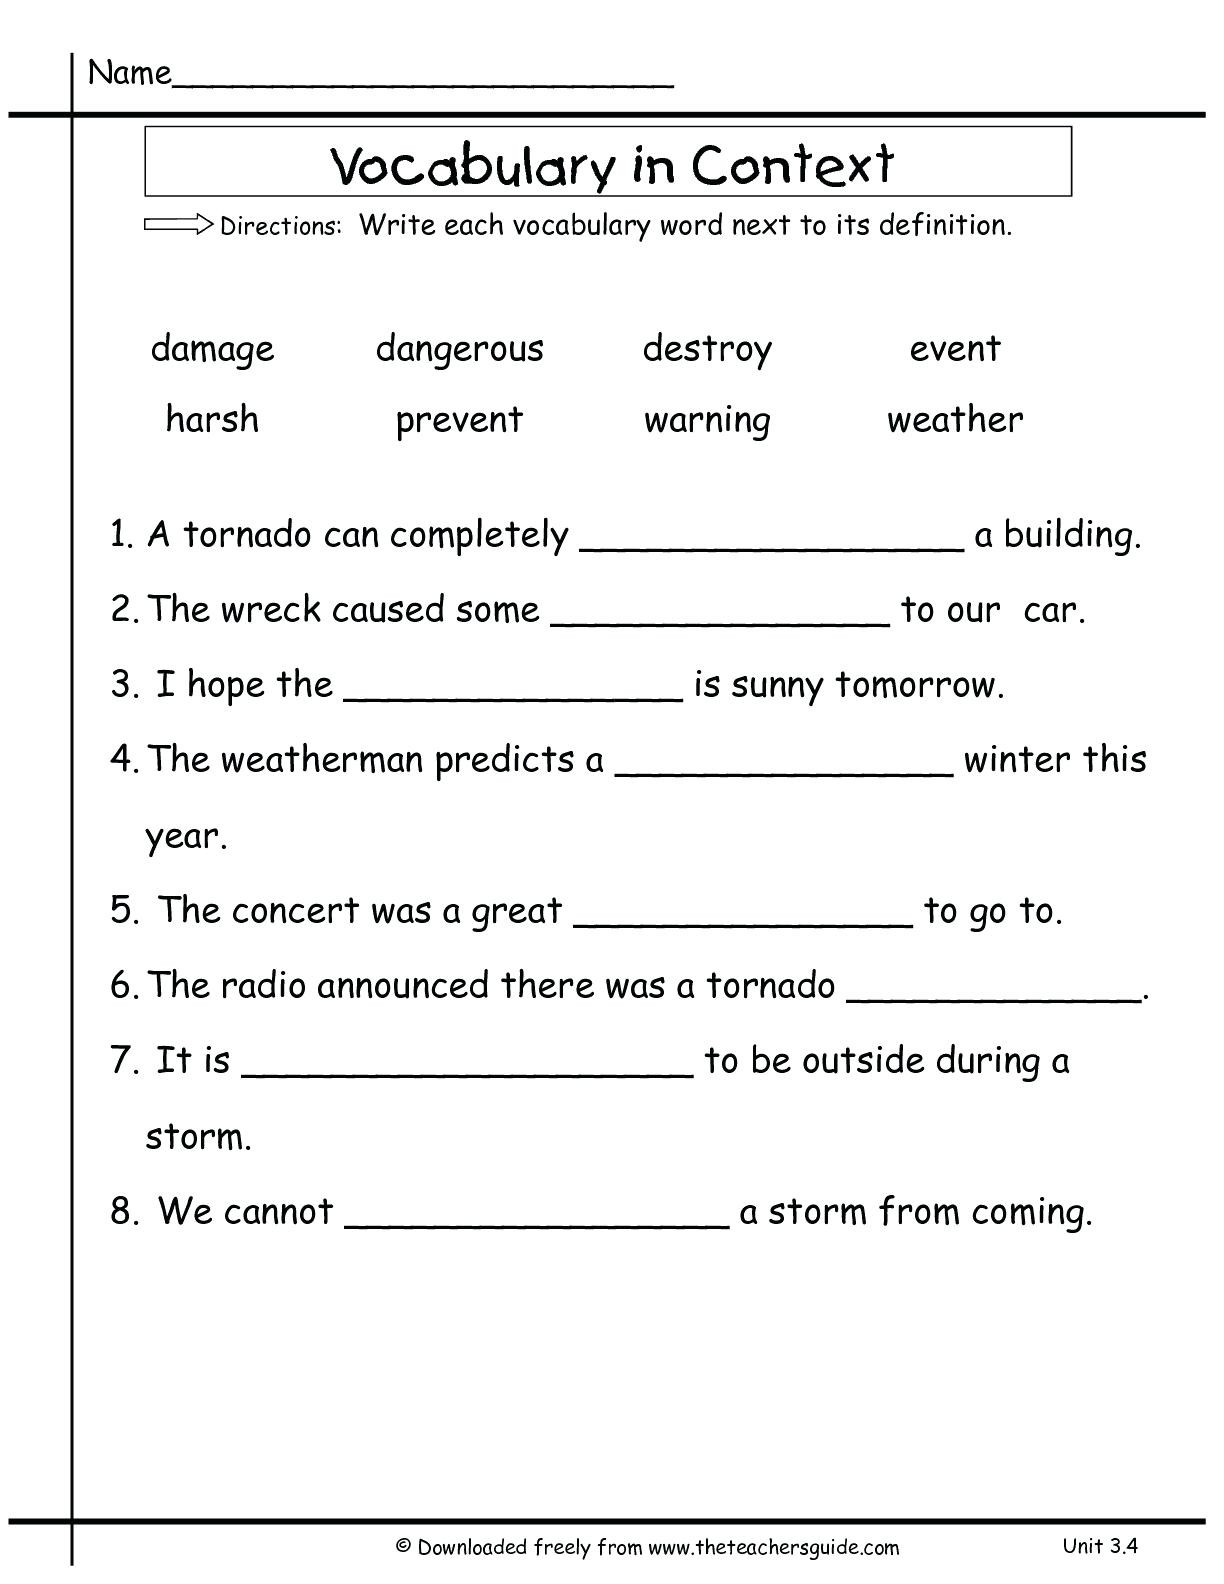 3rd Grade Vocabulary Worksheets Pdf 3rd Grade Vocabulary Worksheets for Educations Free Math